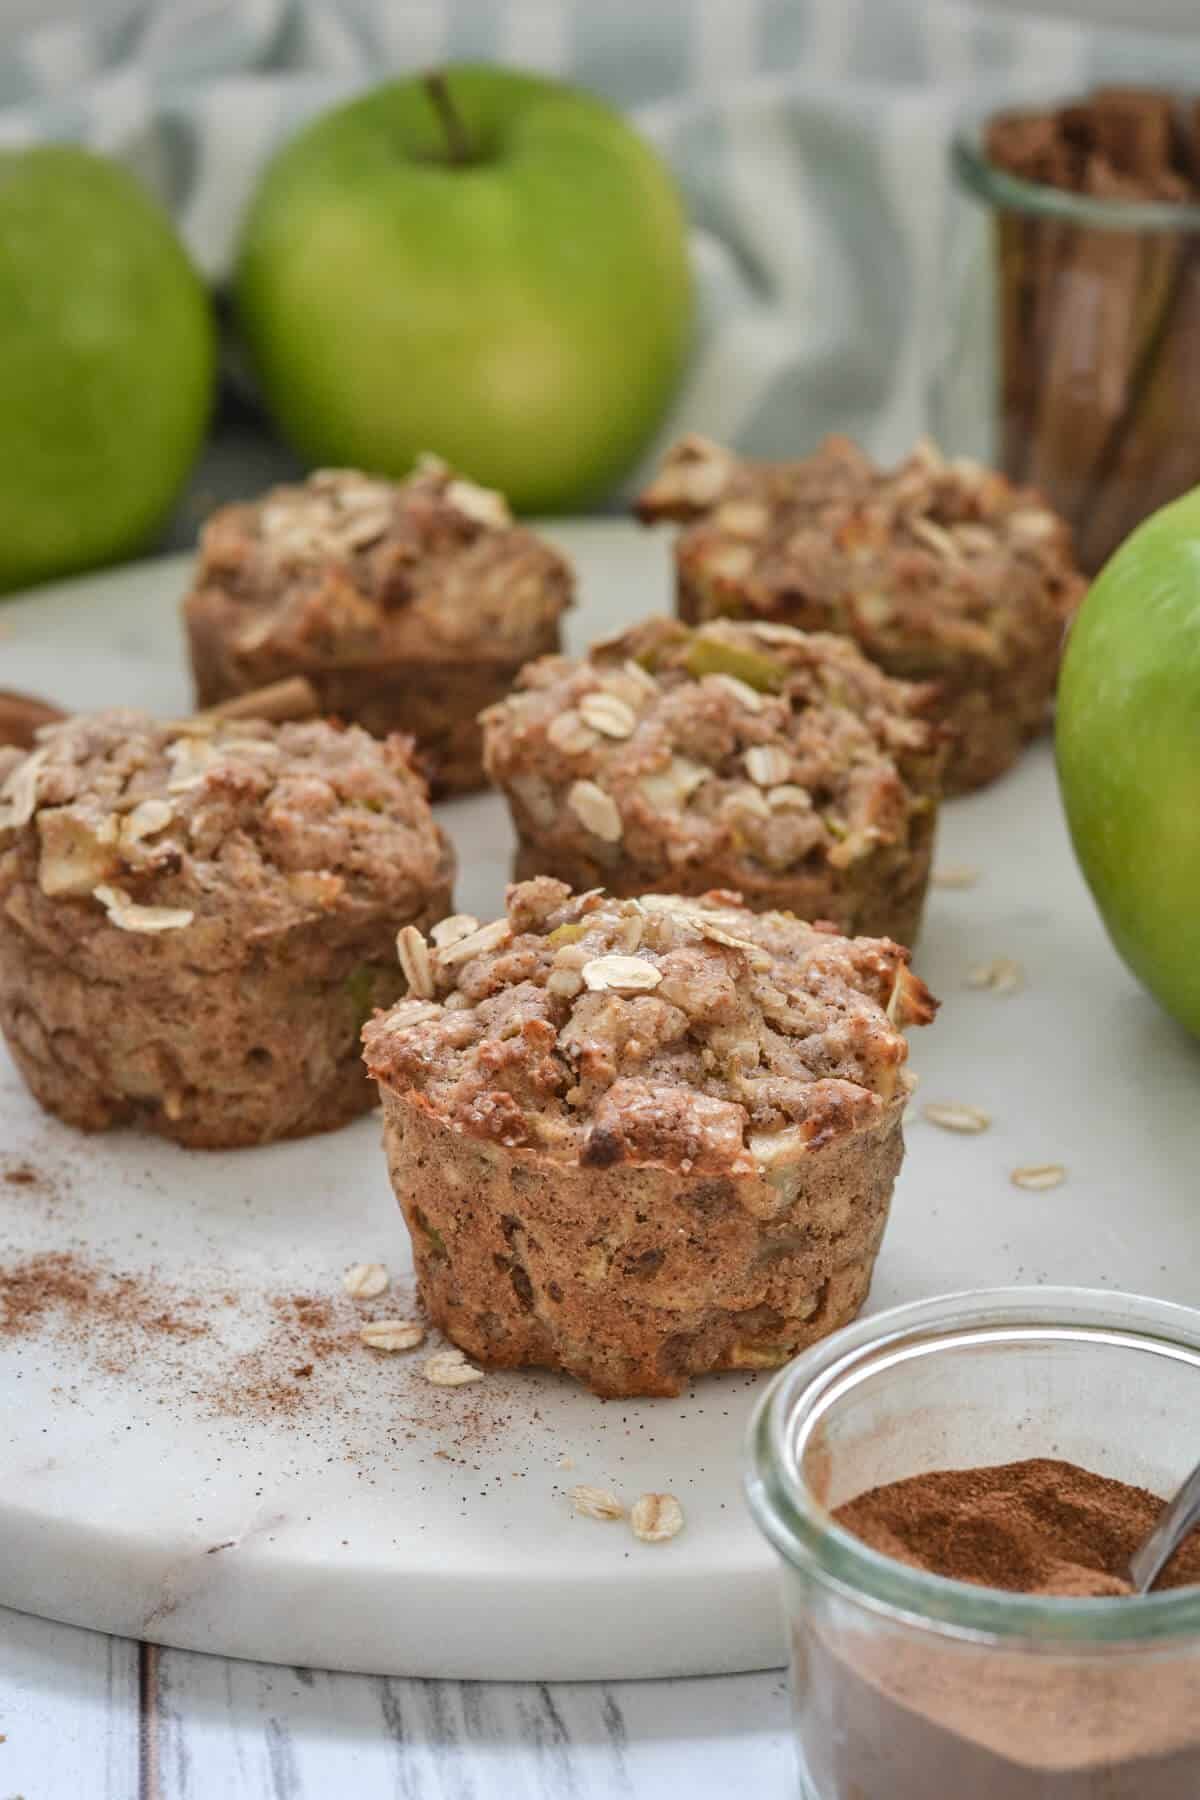 muffins displayed on a white plate with apples and cinnamon sticks